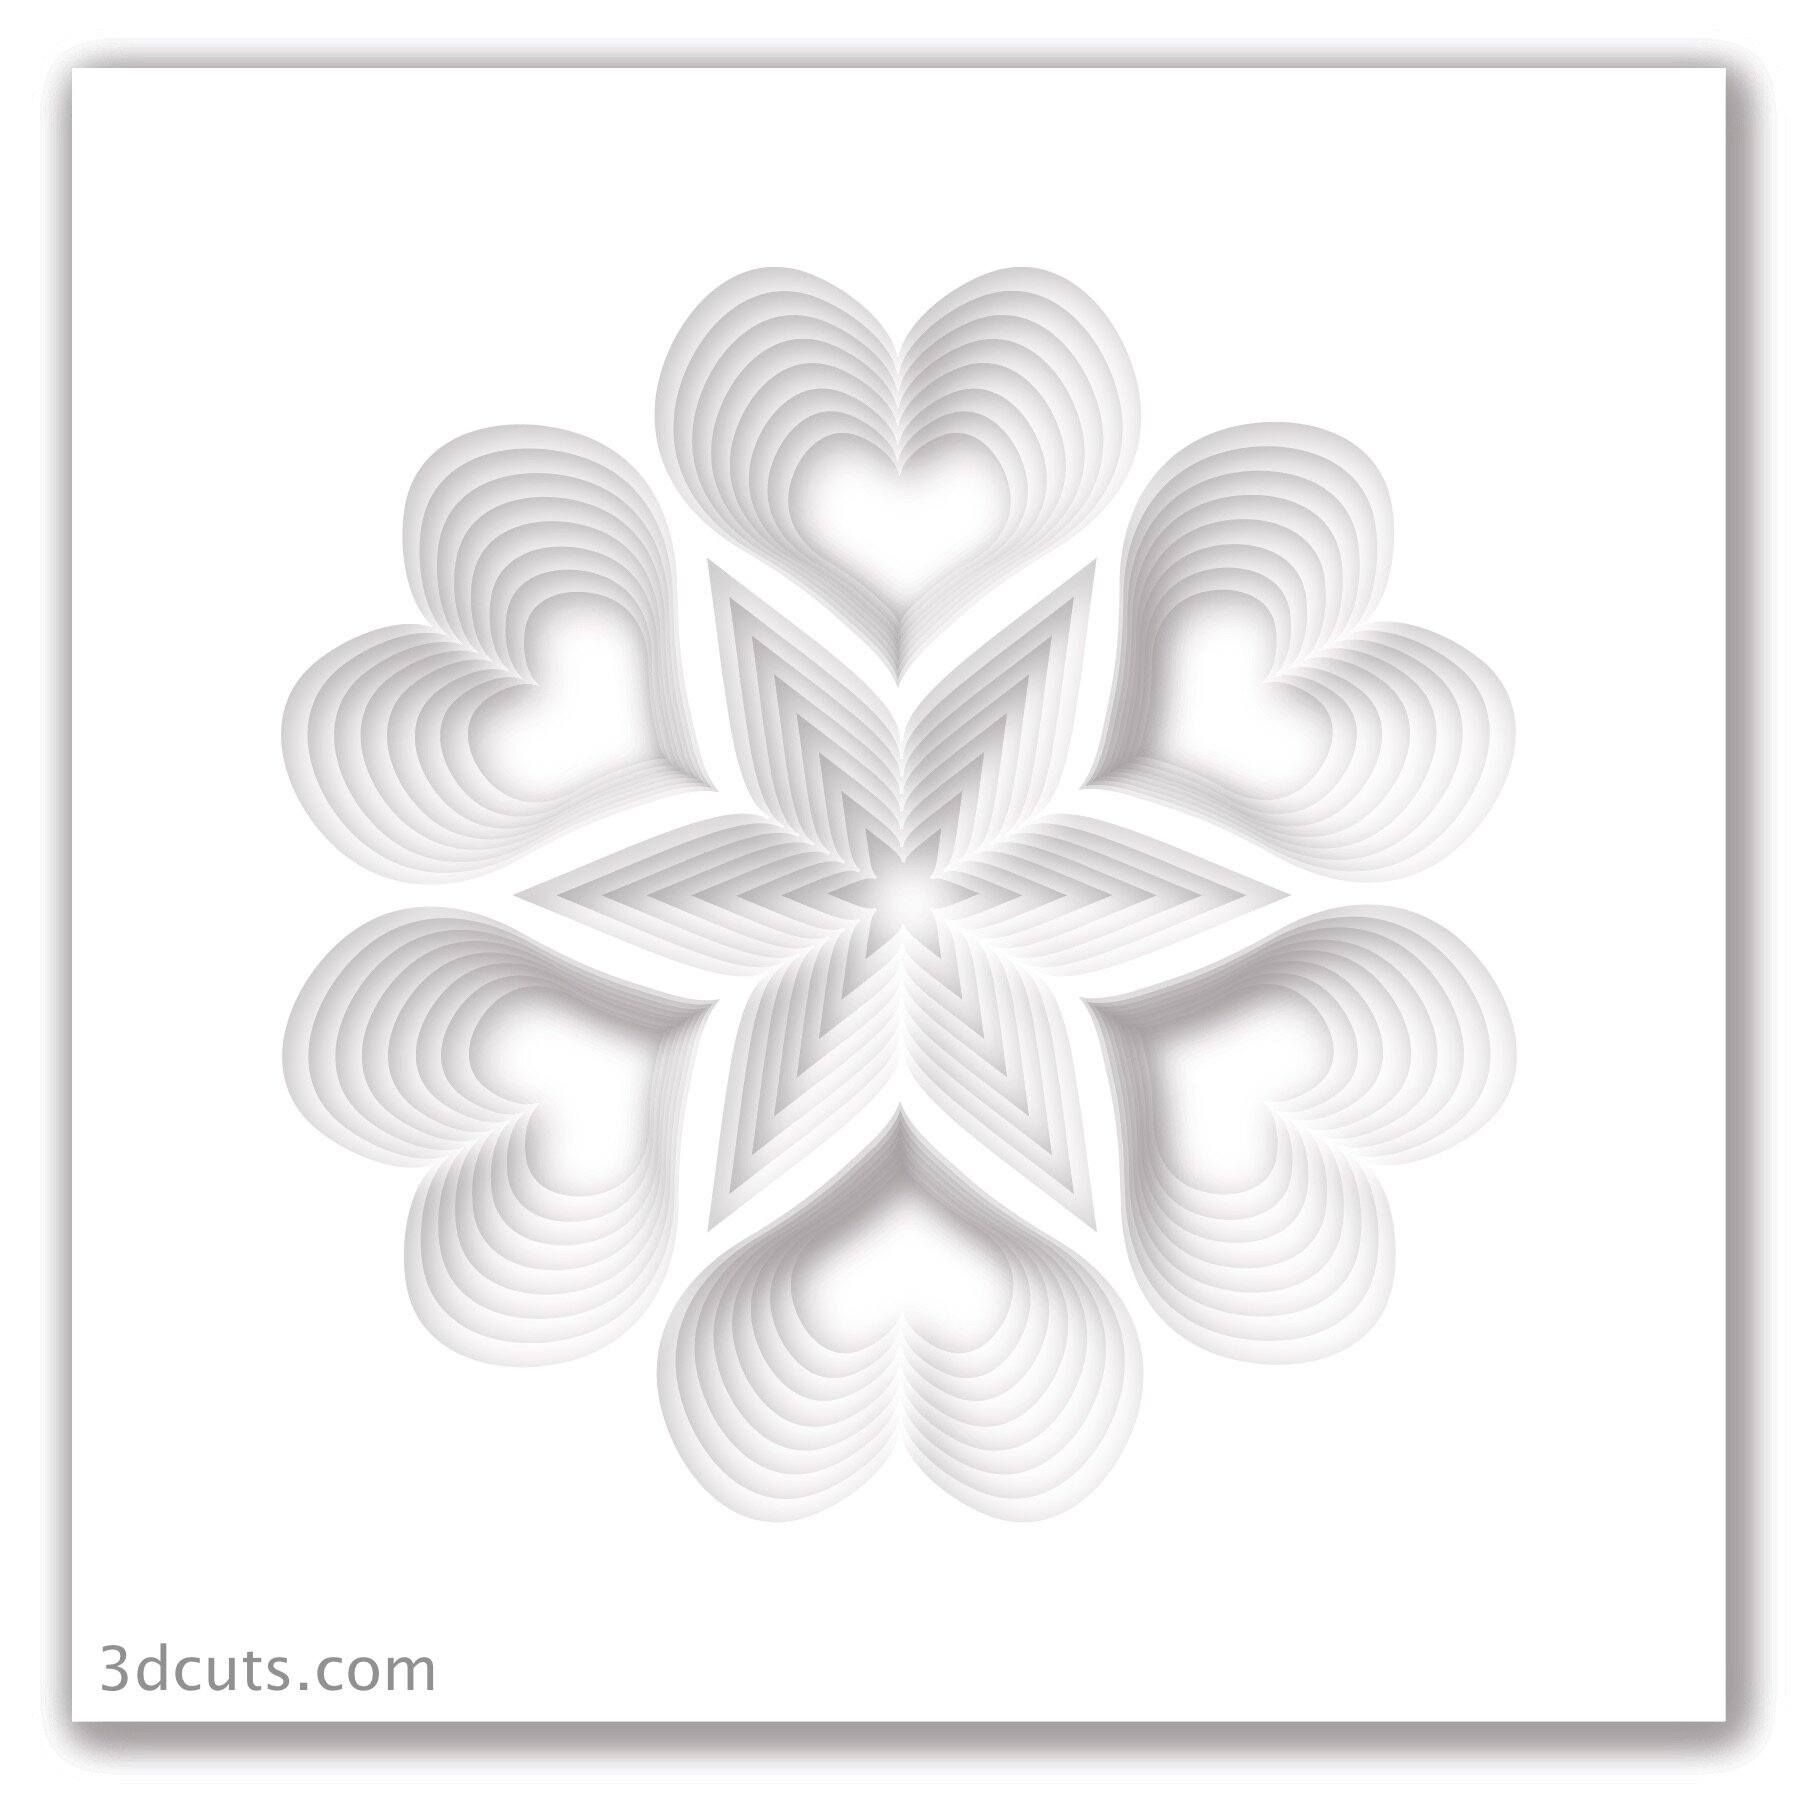 Stacked Hearts Valentine Set 3dcuts Com